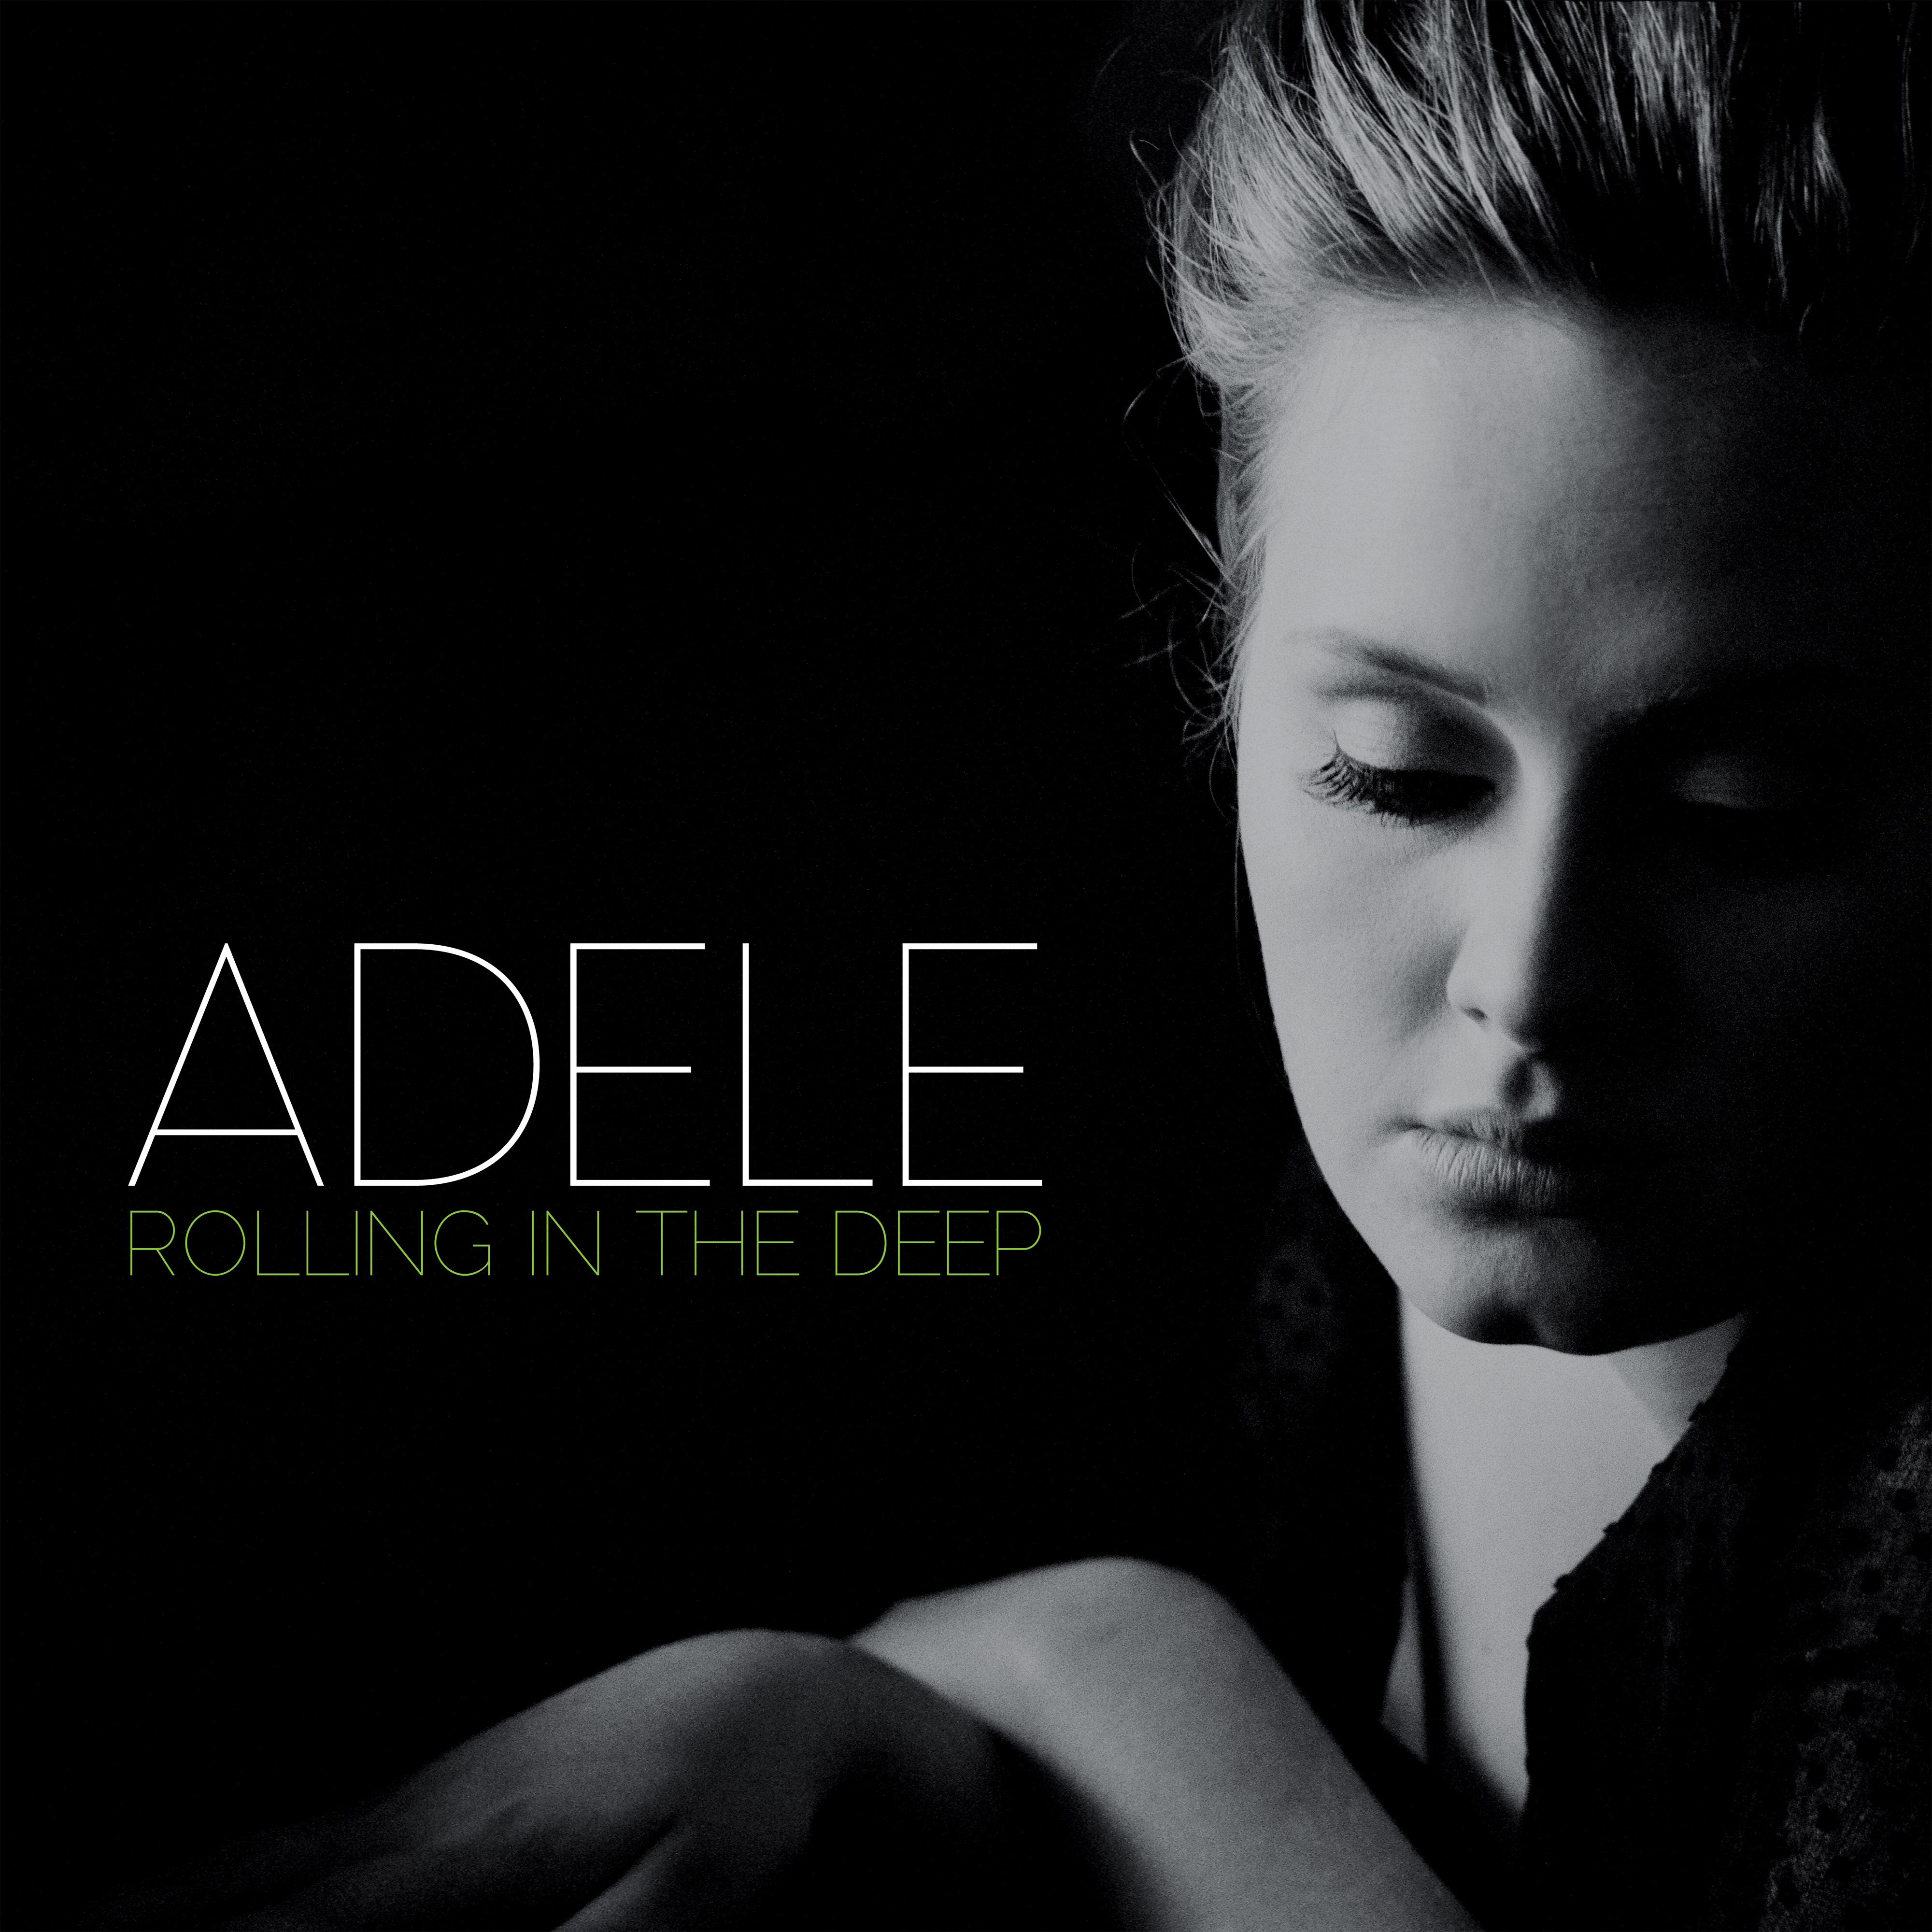 Adele Song I Believe: Rolling In The Deep (song)